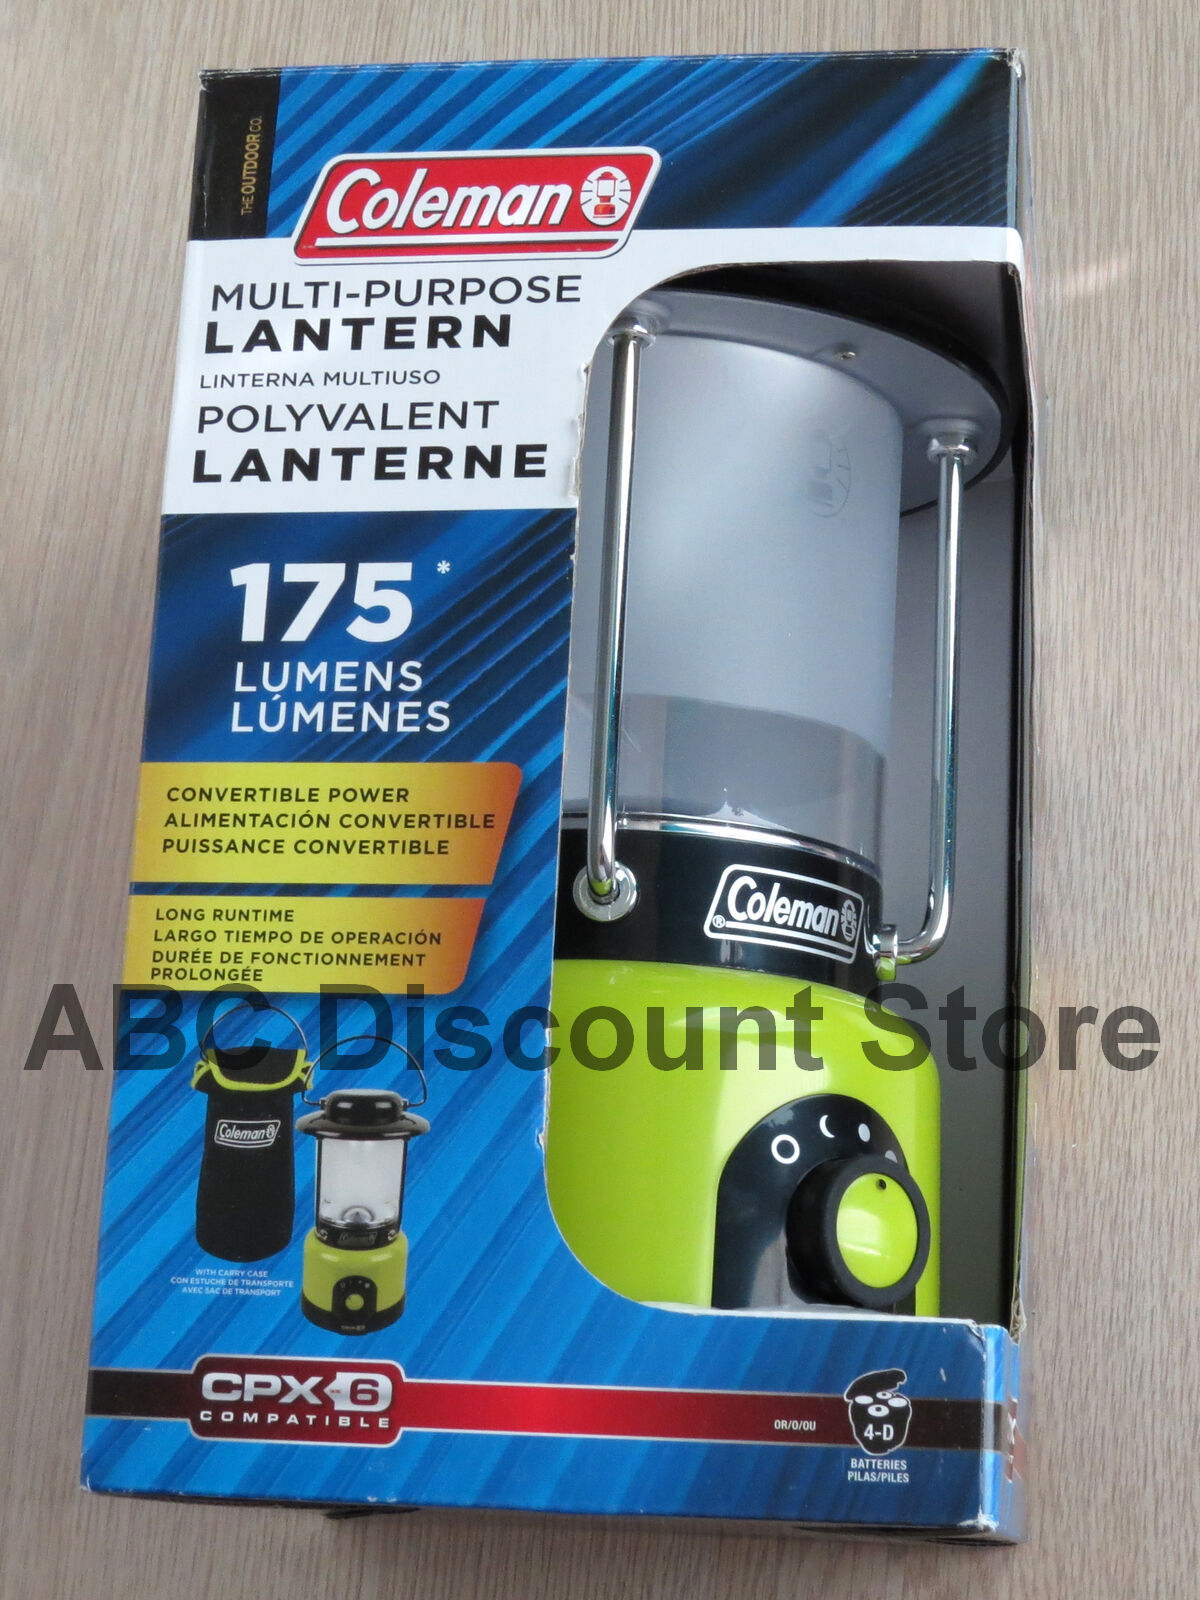 Coleman Multi-Purpose Lantern with Carrying Case - Brand New